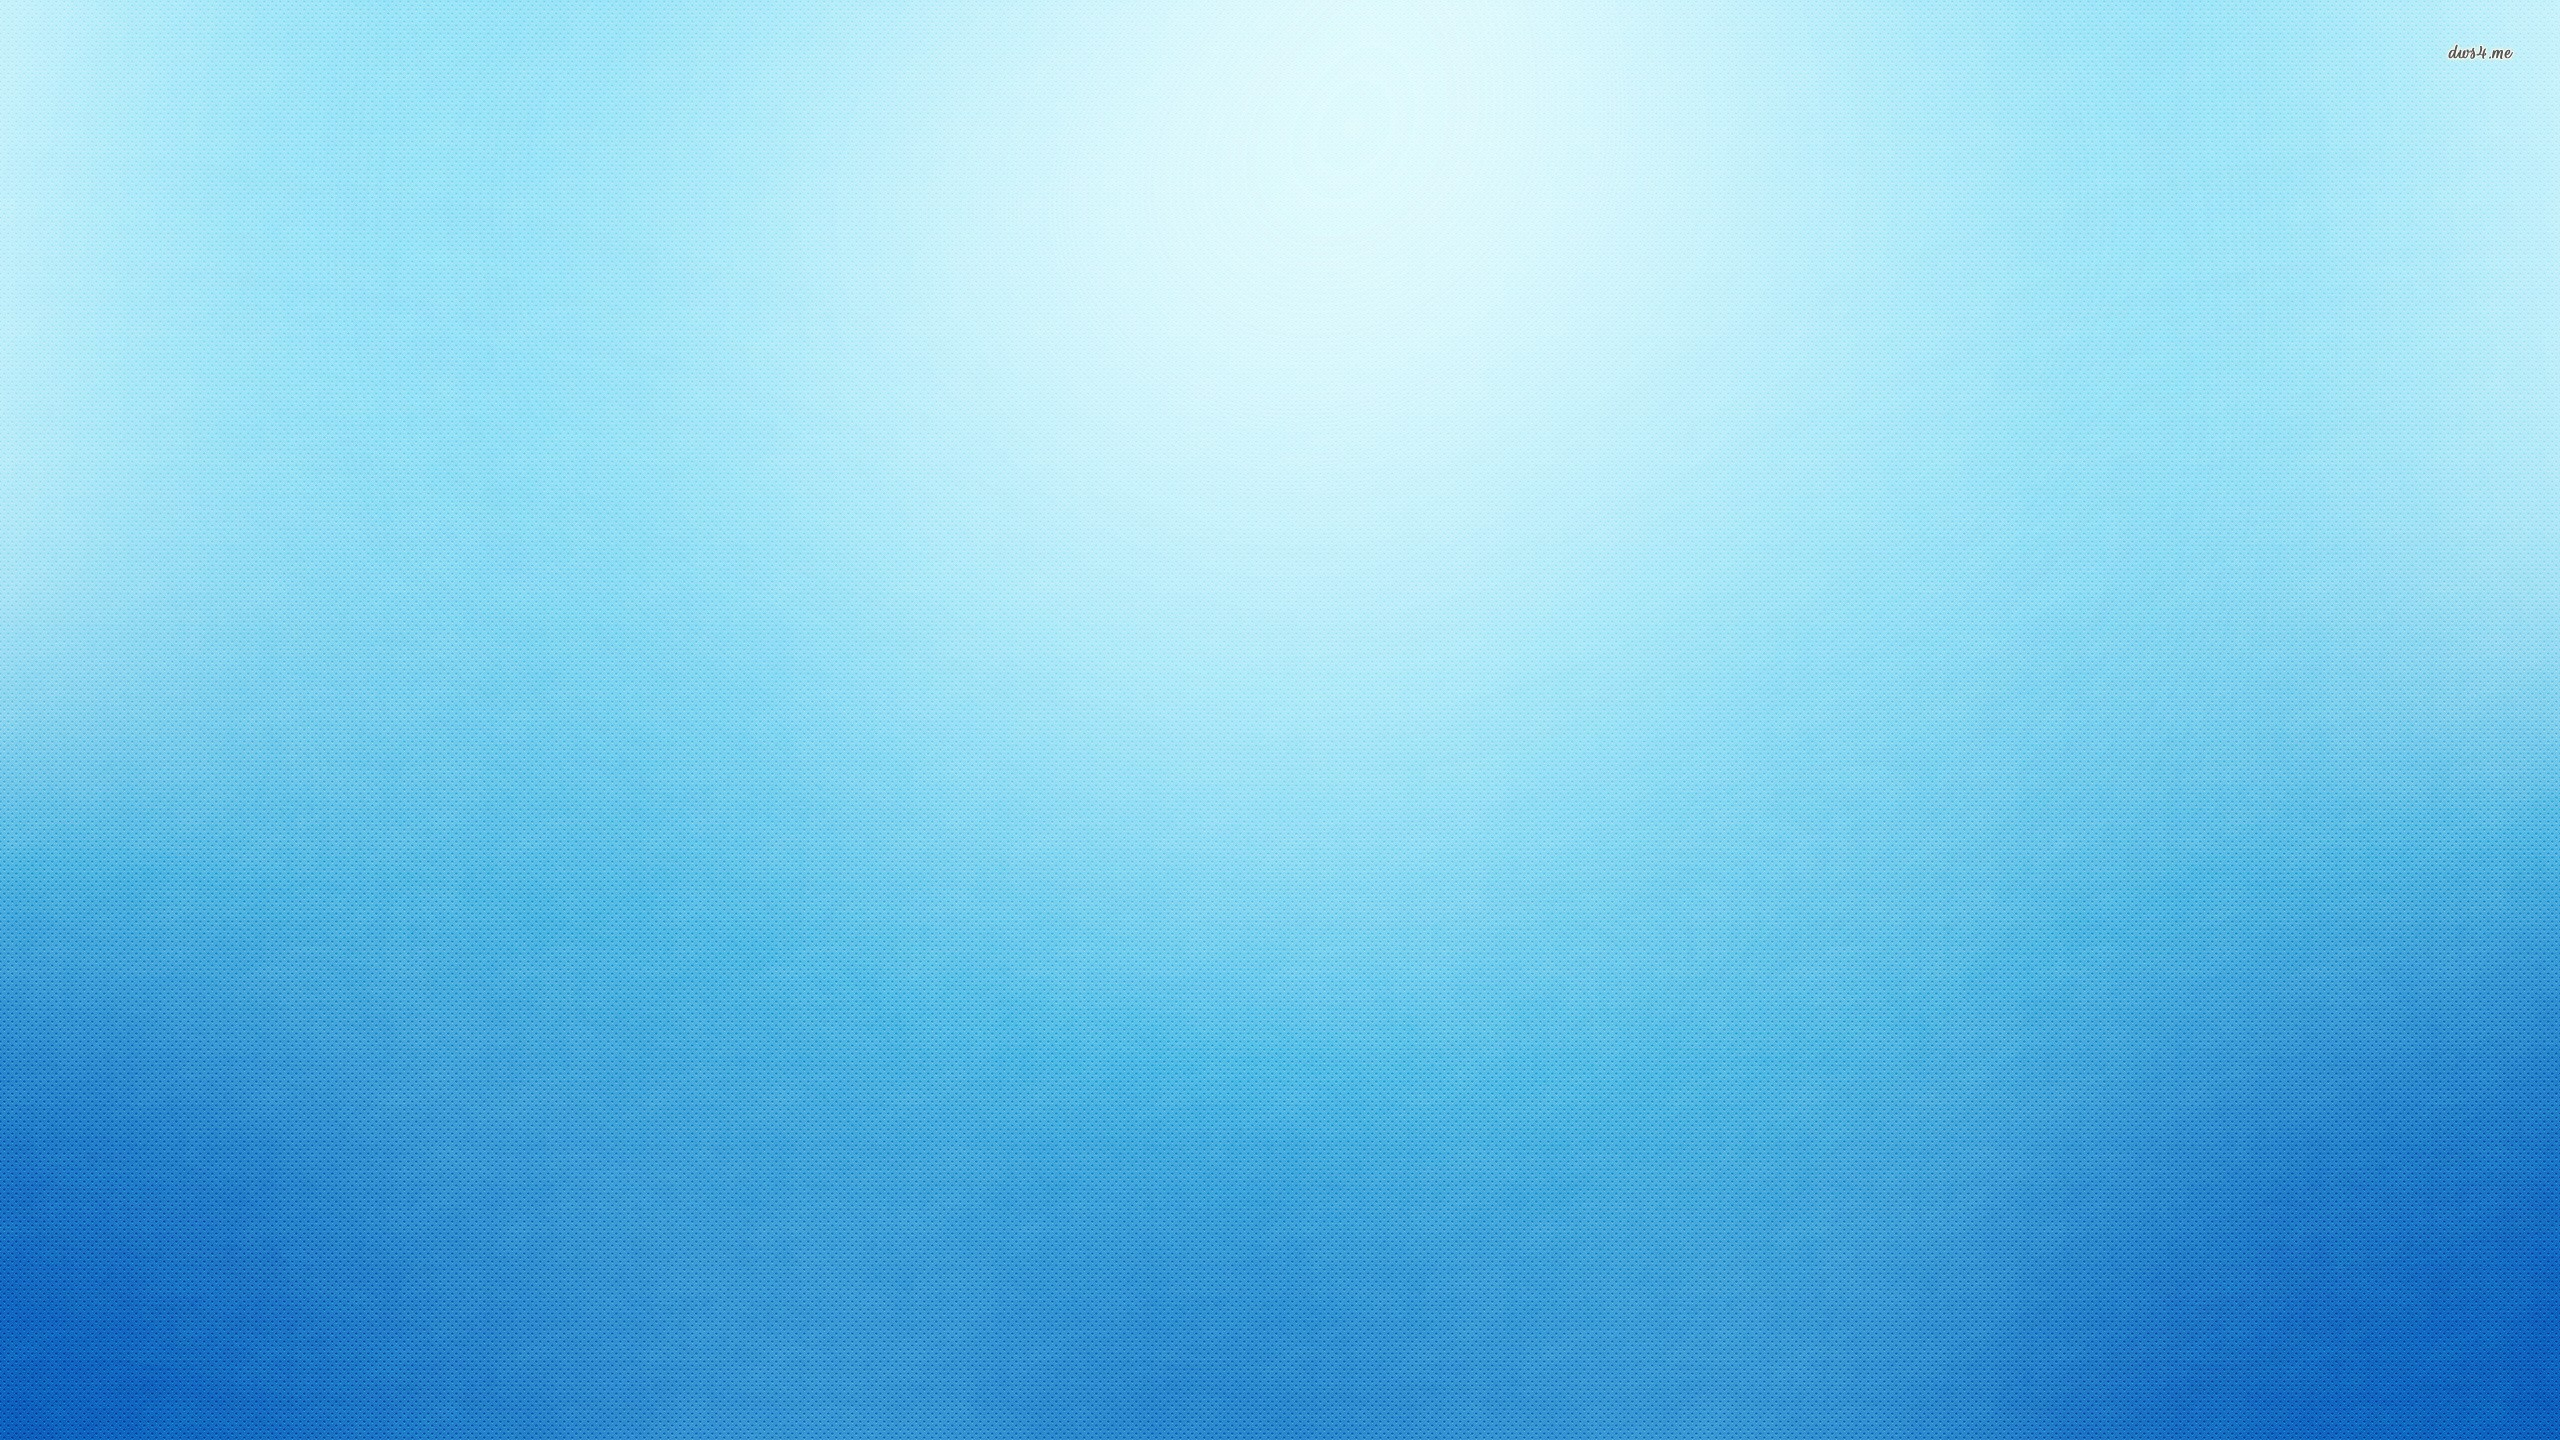 ... Light blue texture wallpaper 2560x1440 ...